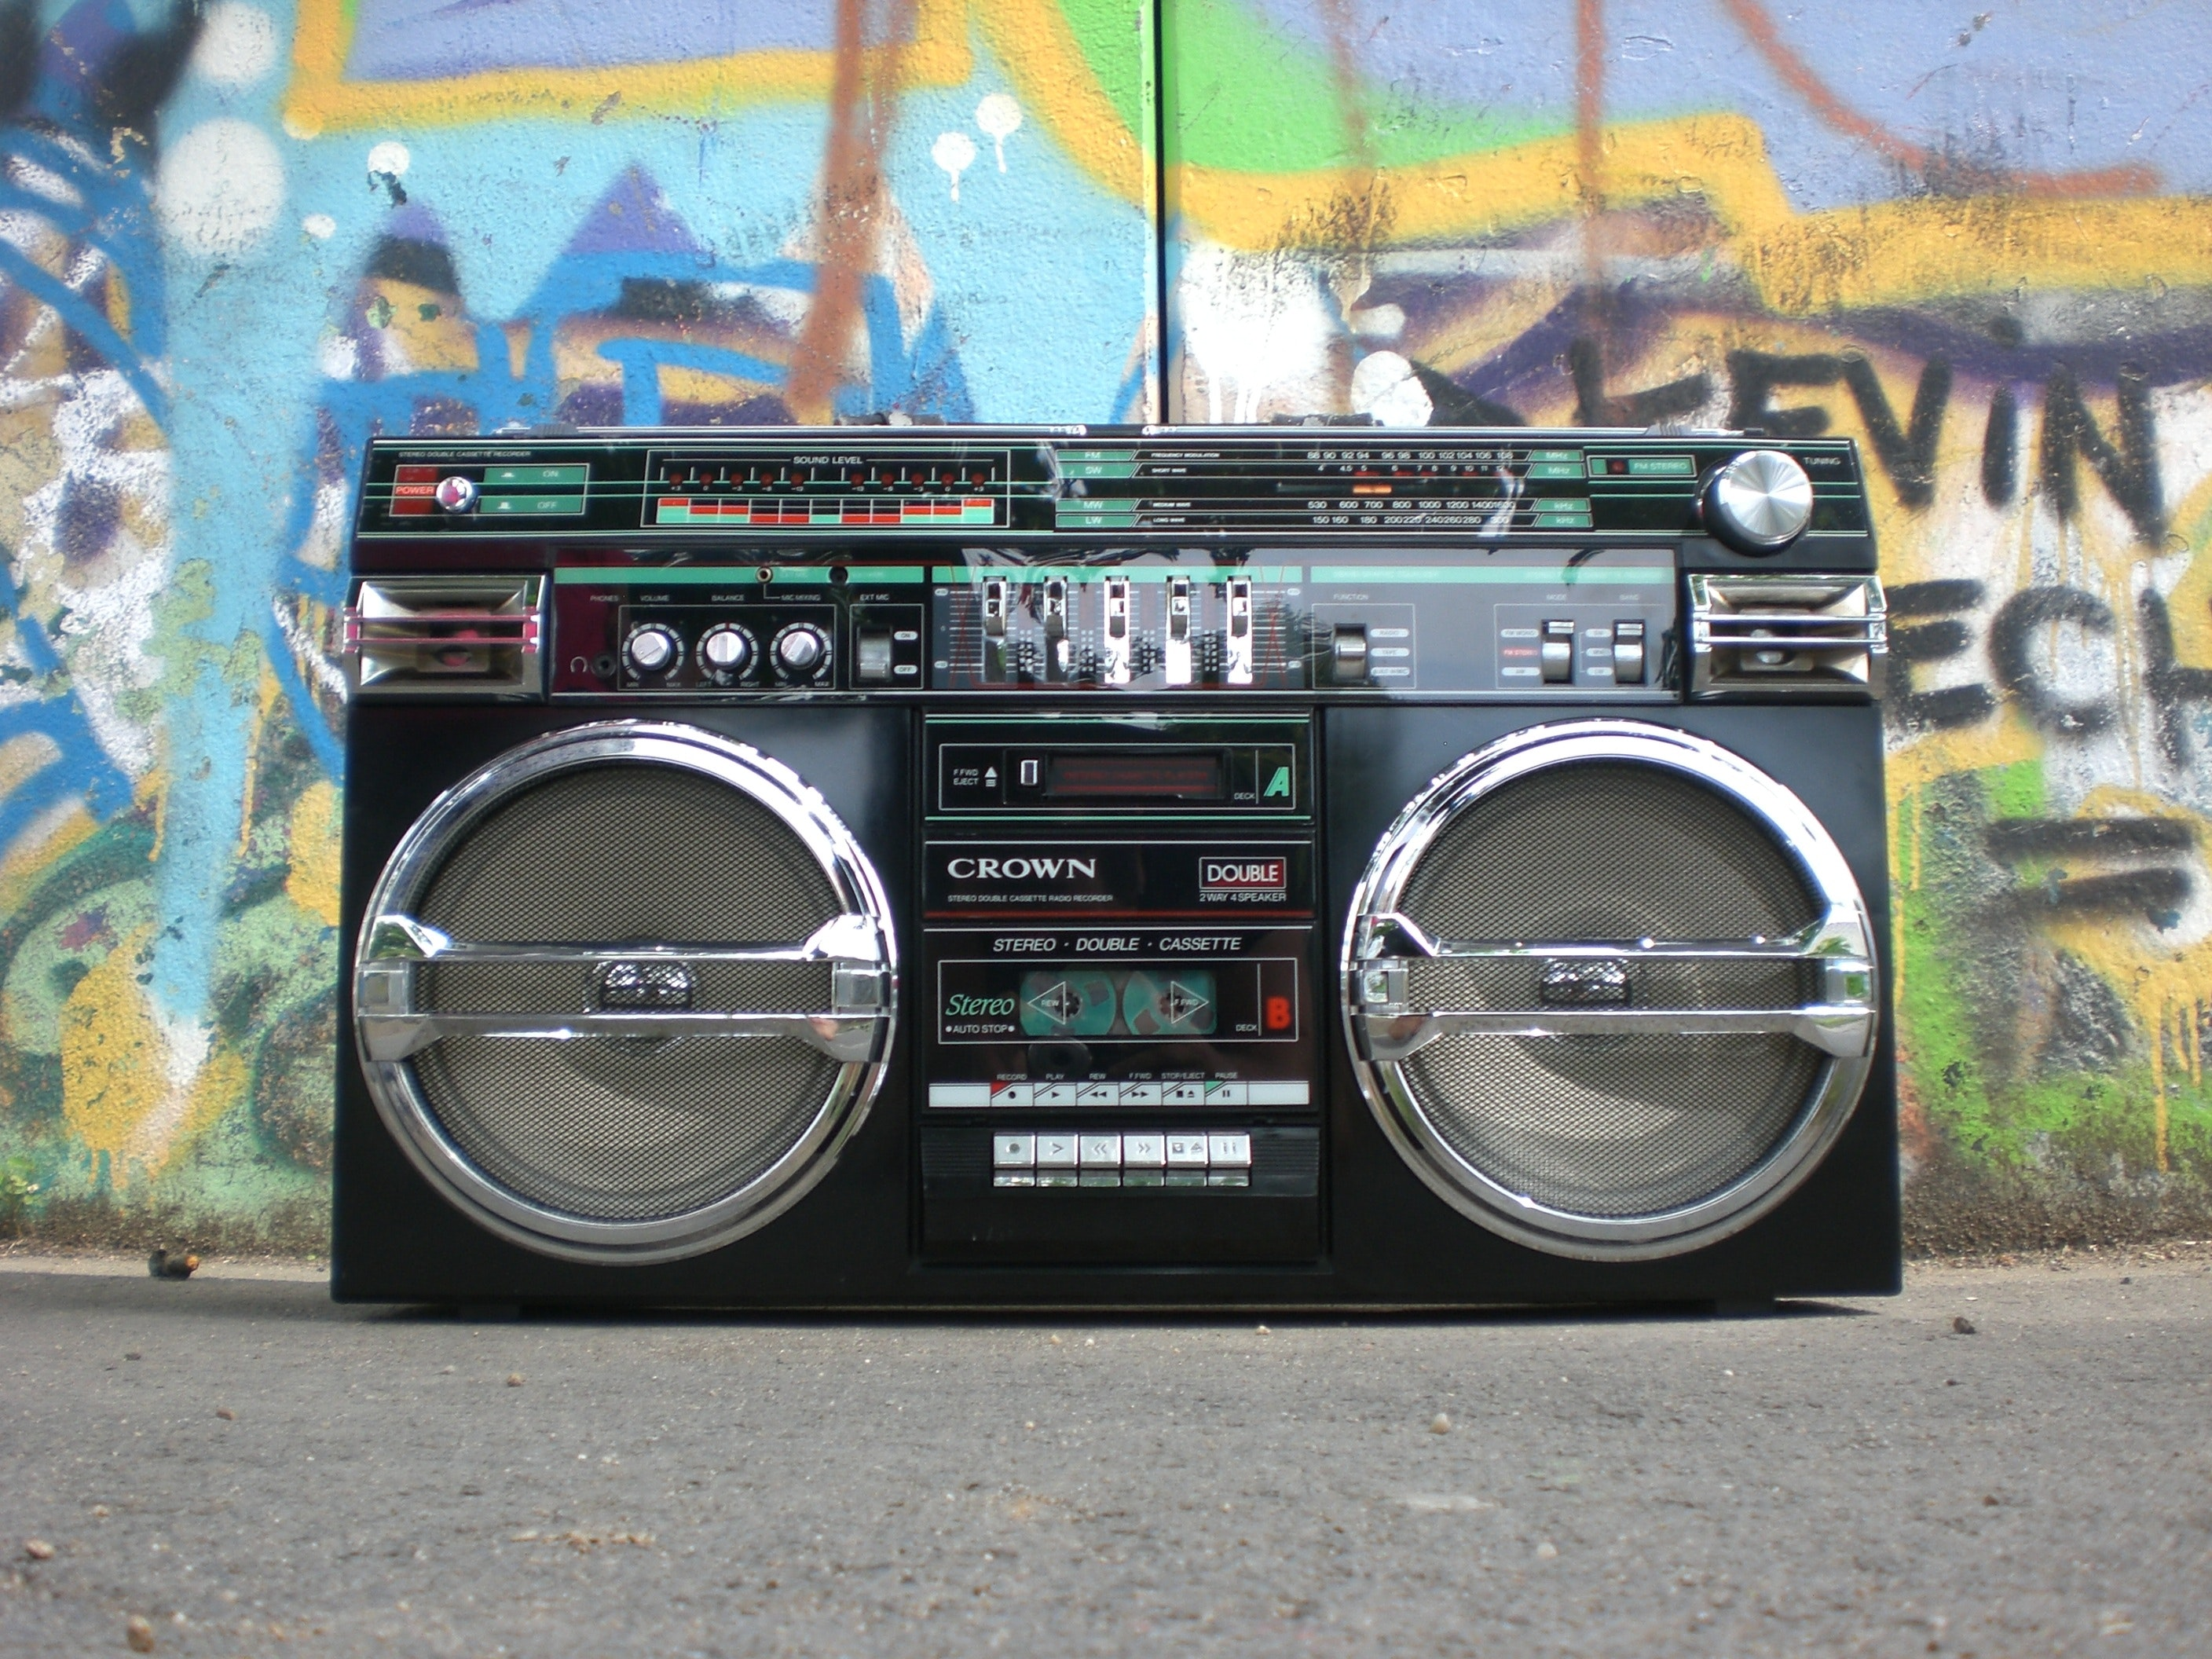 black-and-silver-cassette-player-159613